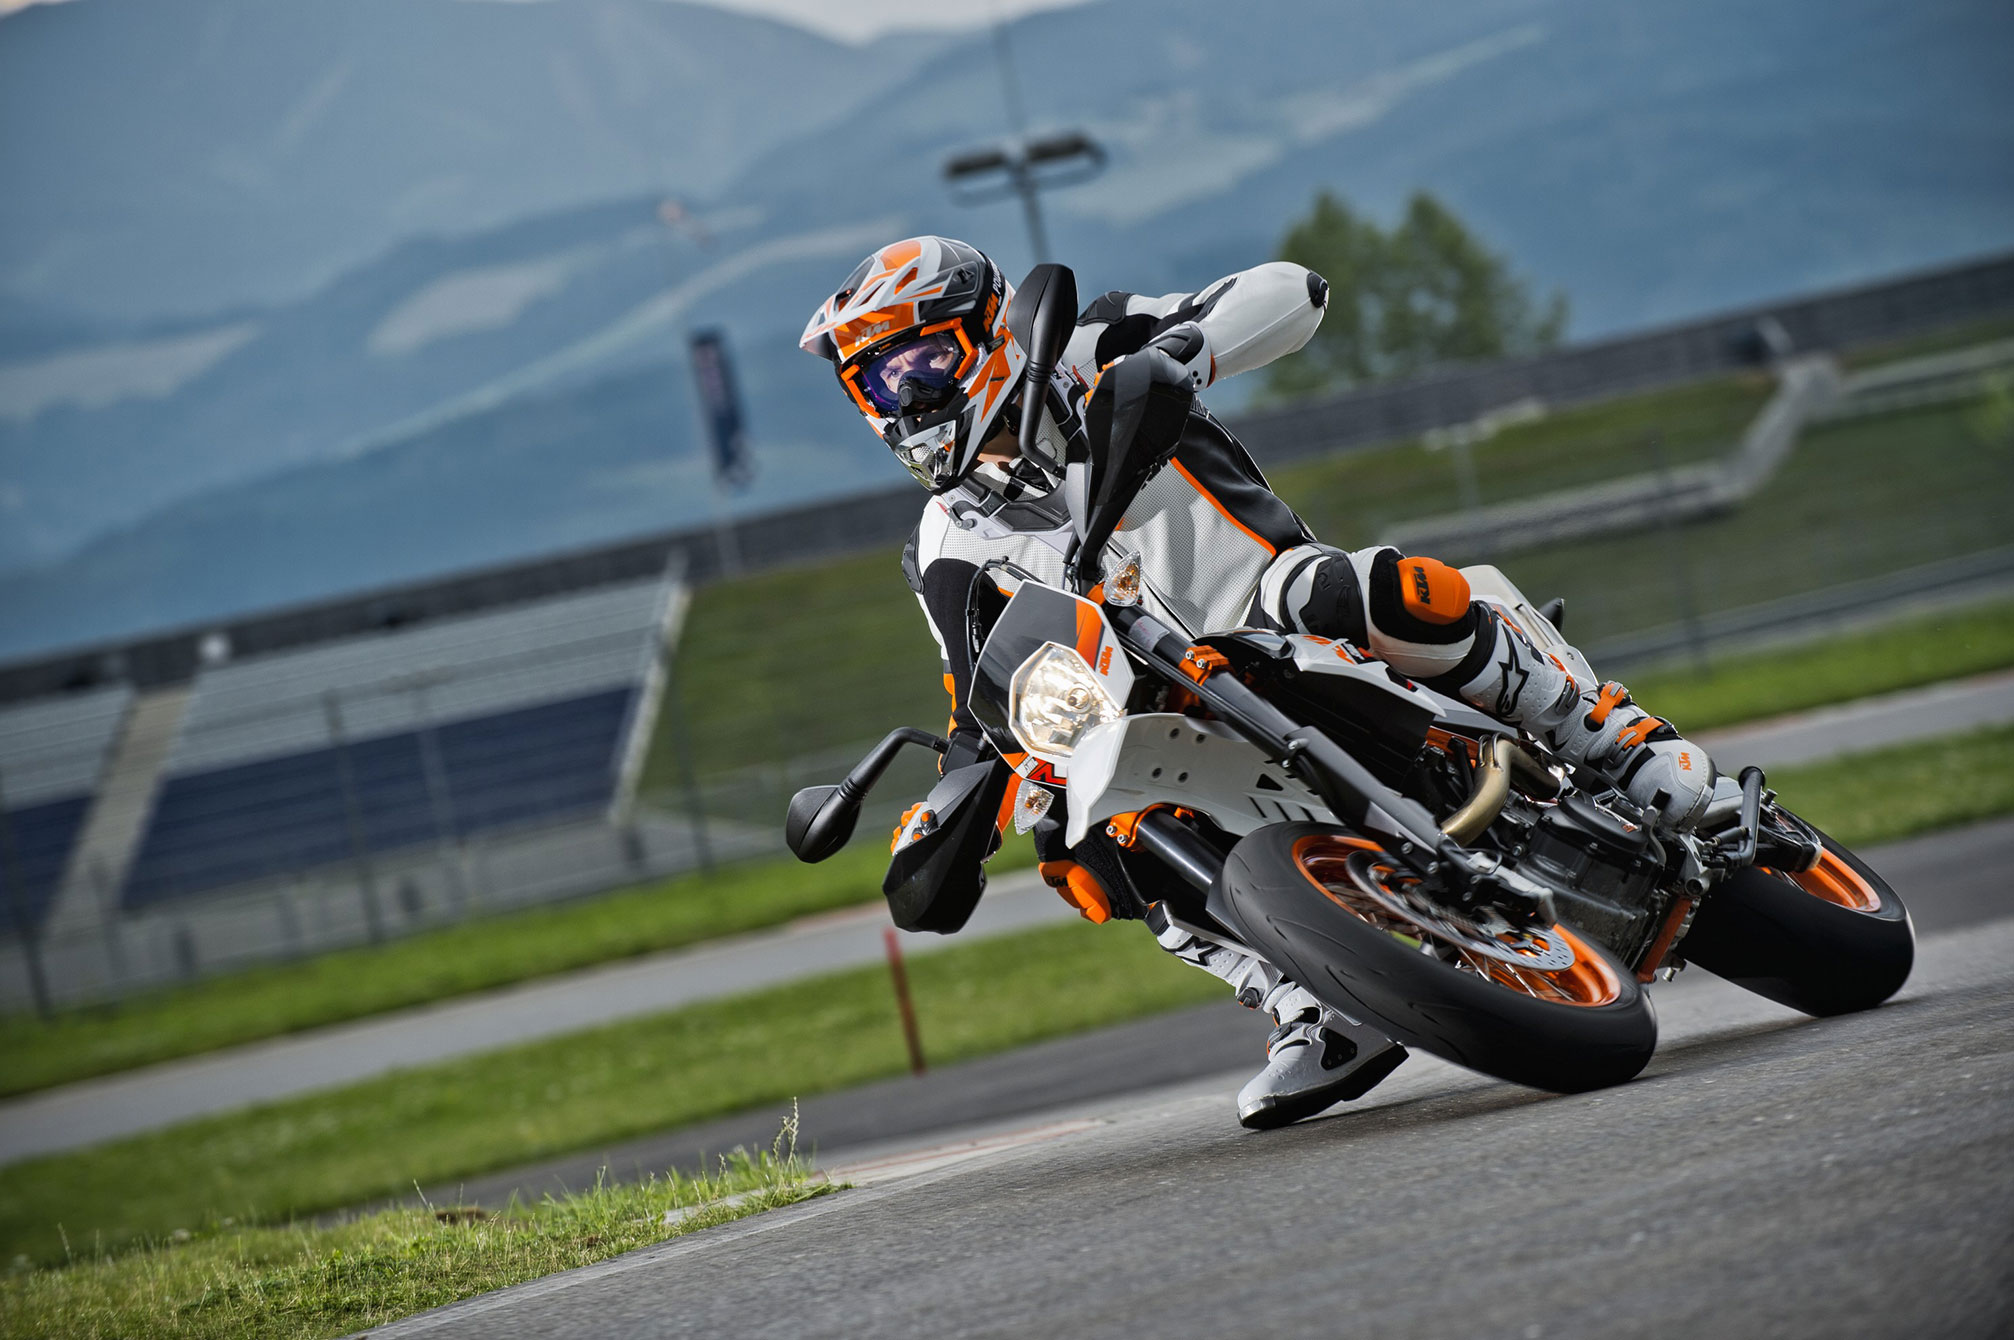 Ktm 690 smc r wallpapers for desktop -  Ktm 690 Smc R 2014 7